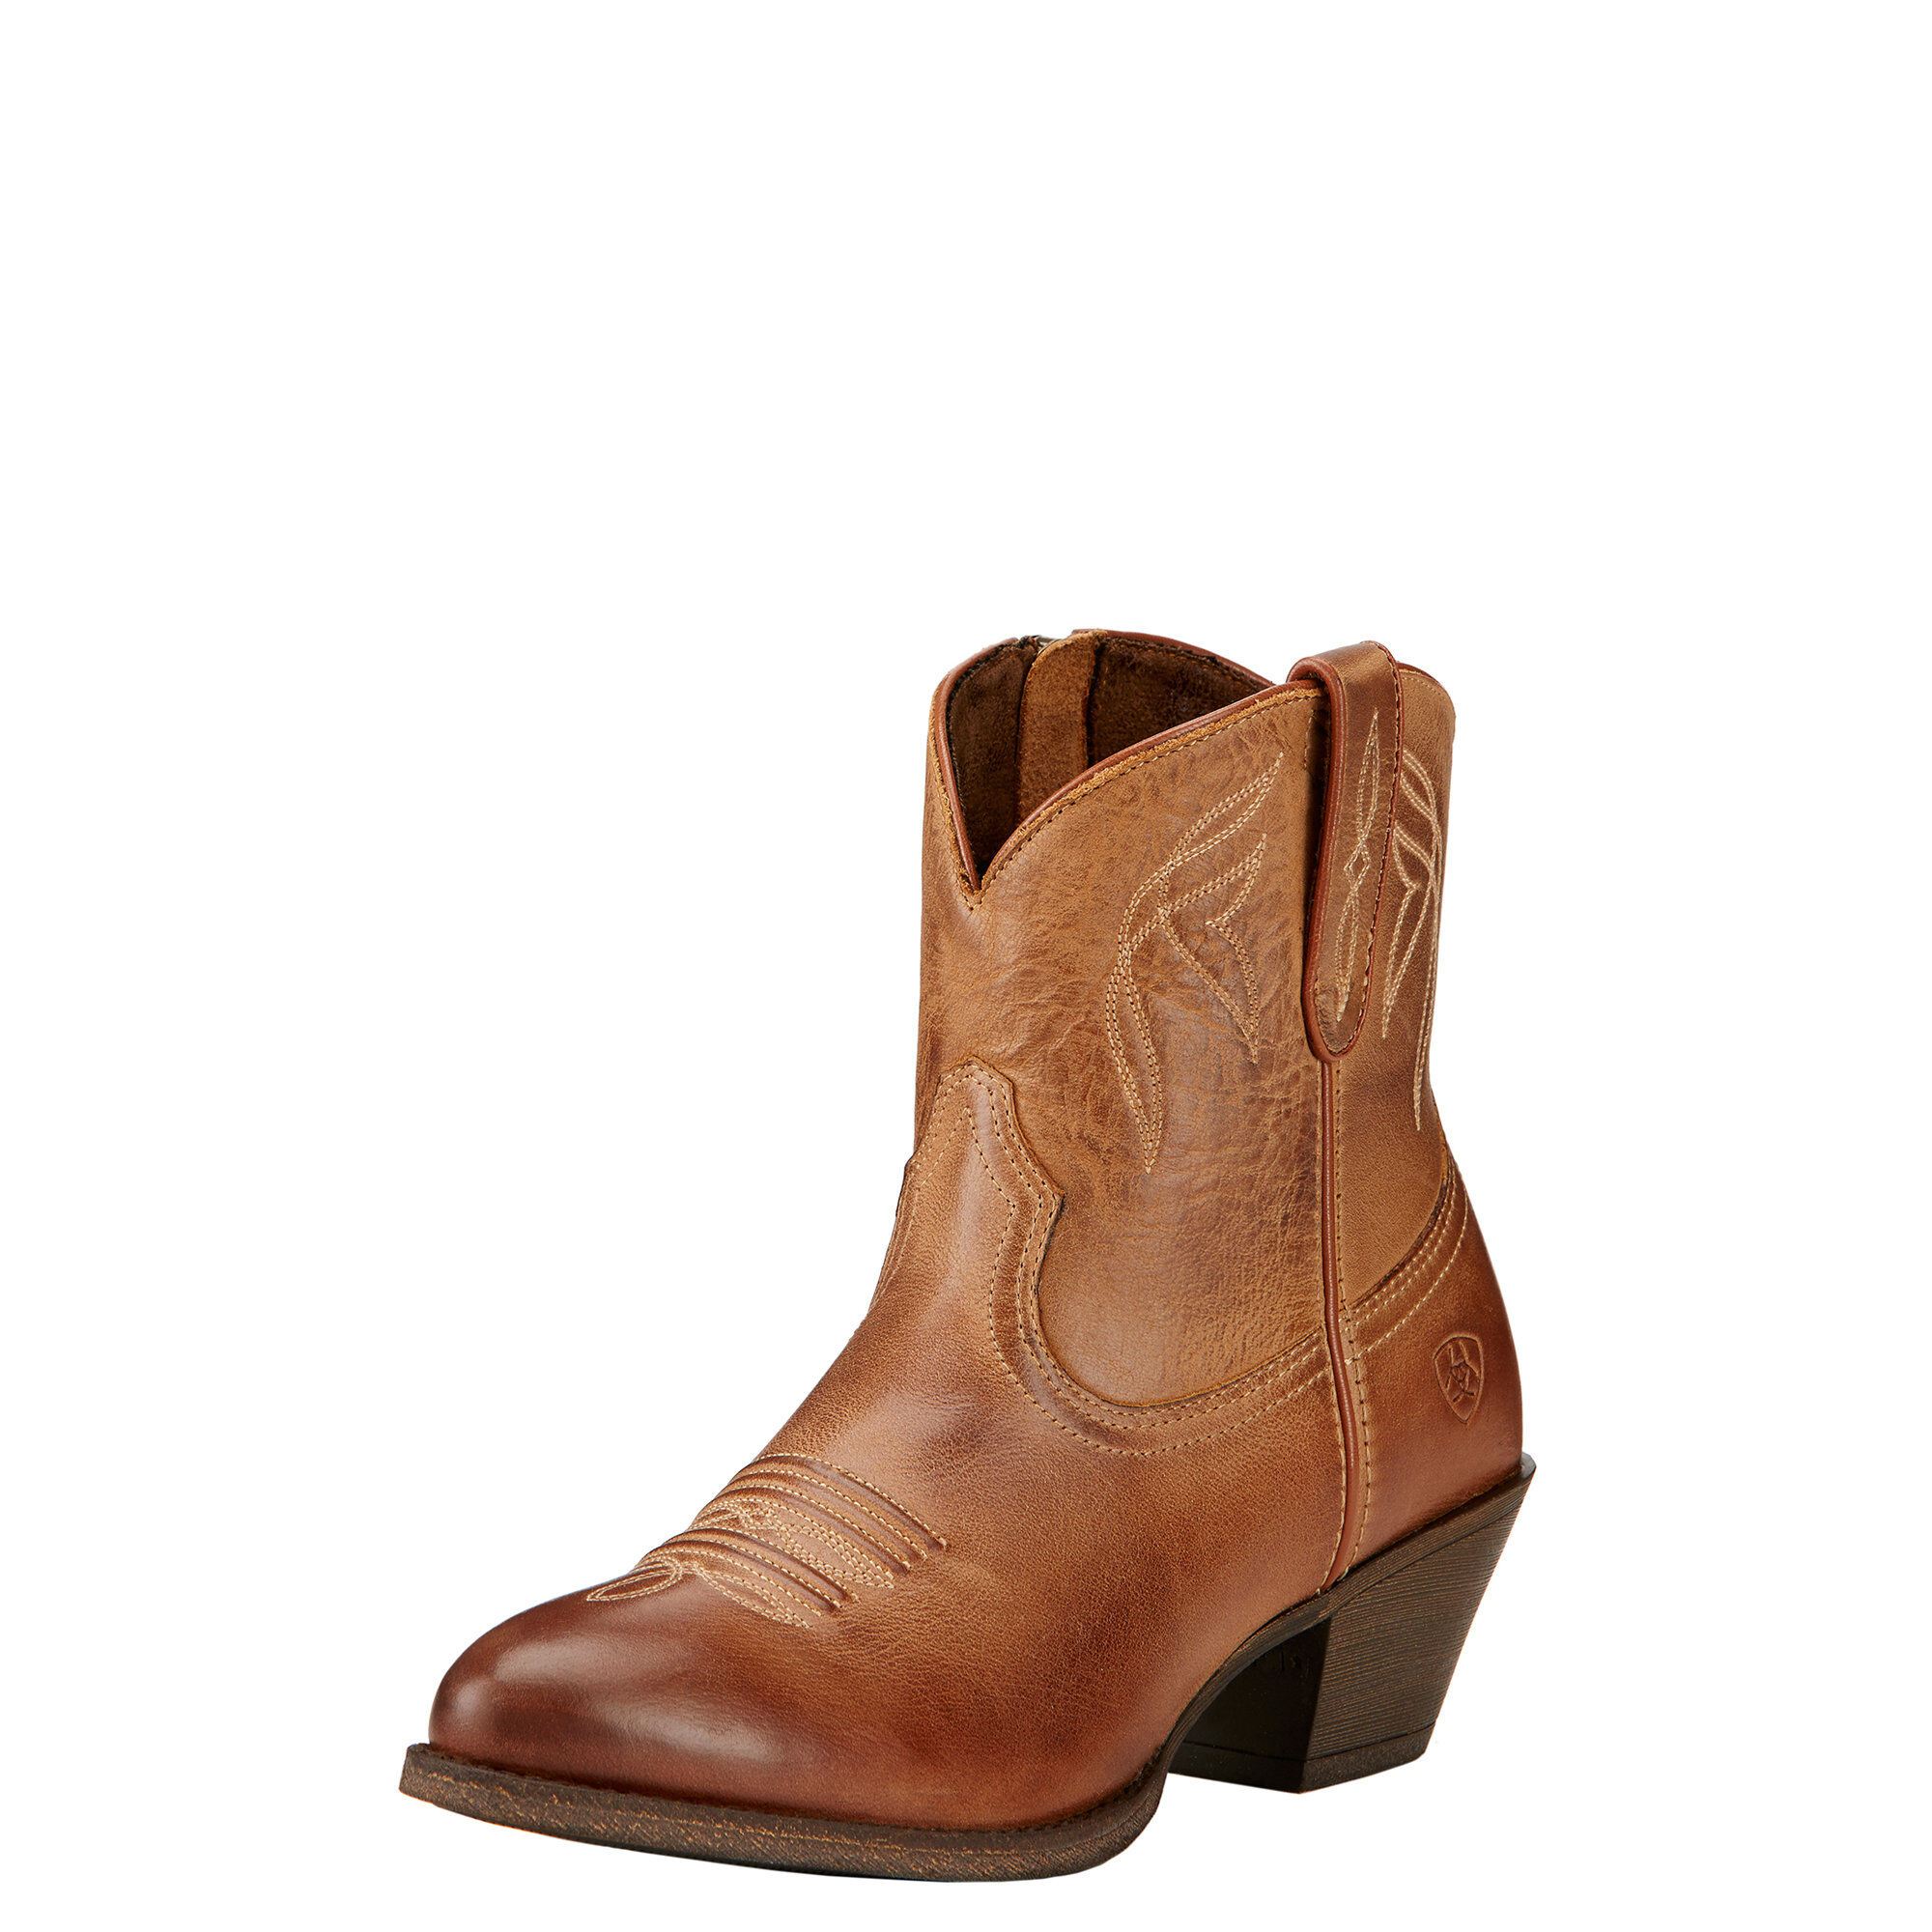 Women's Darlin Western Boots in Burnt Sugar Leather by Ariat